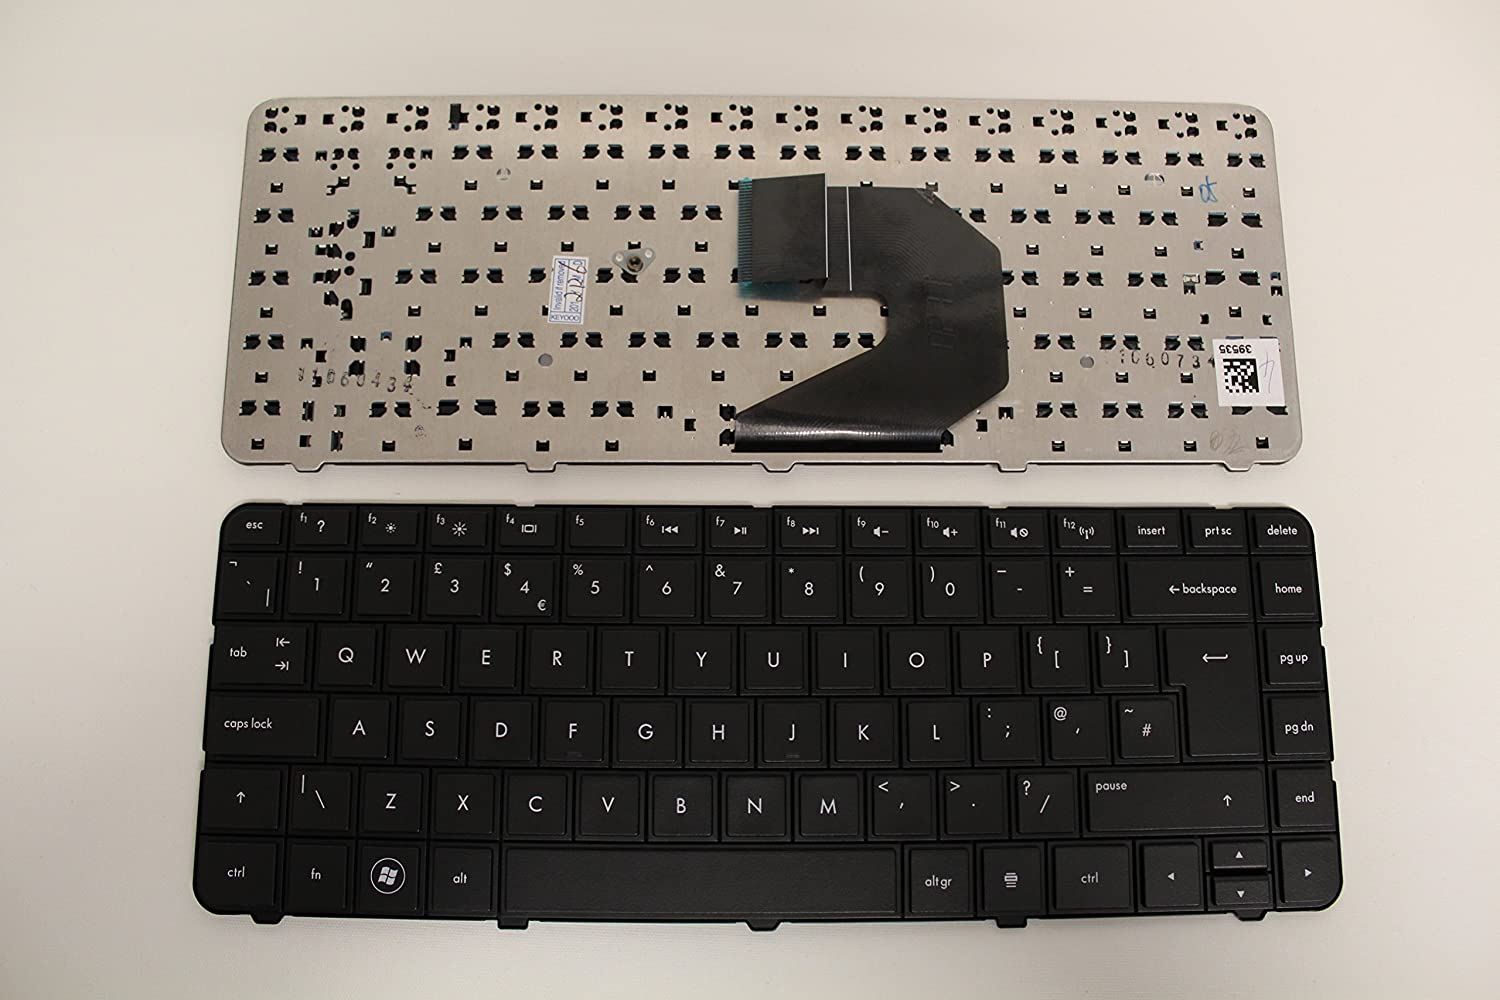 New HP Pavilion G4 G6 G4-1000 G6-1000 Series 633183-031 646125-031 Keyboard UK